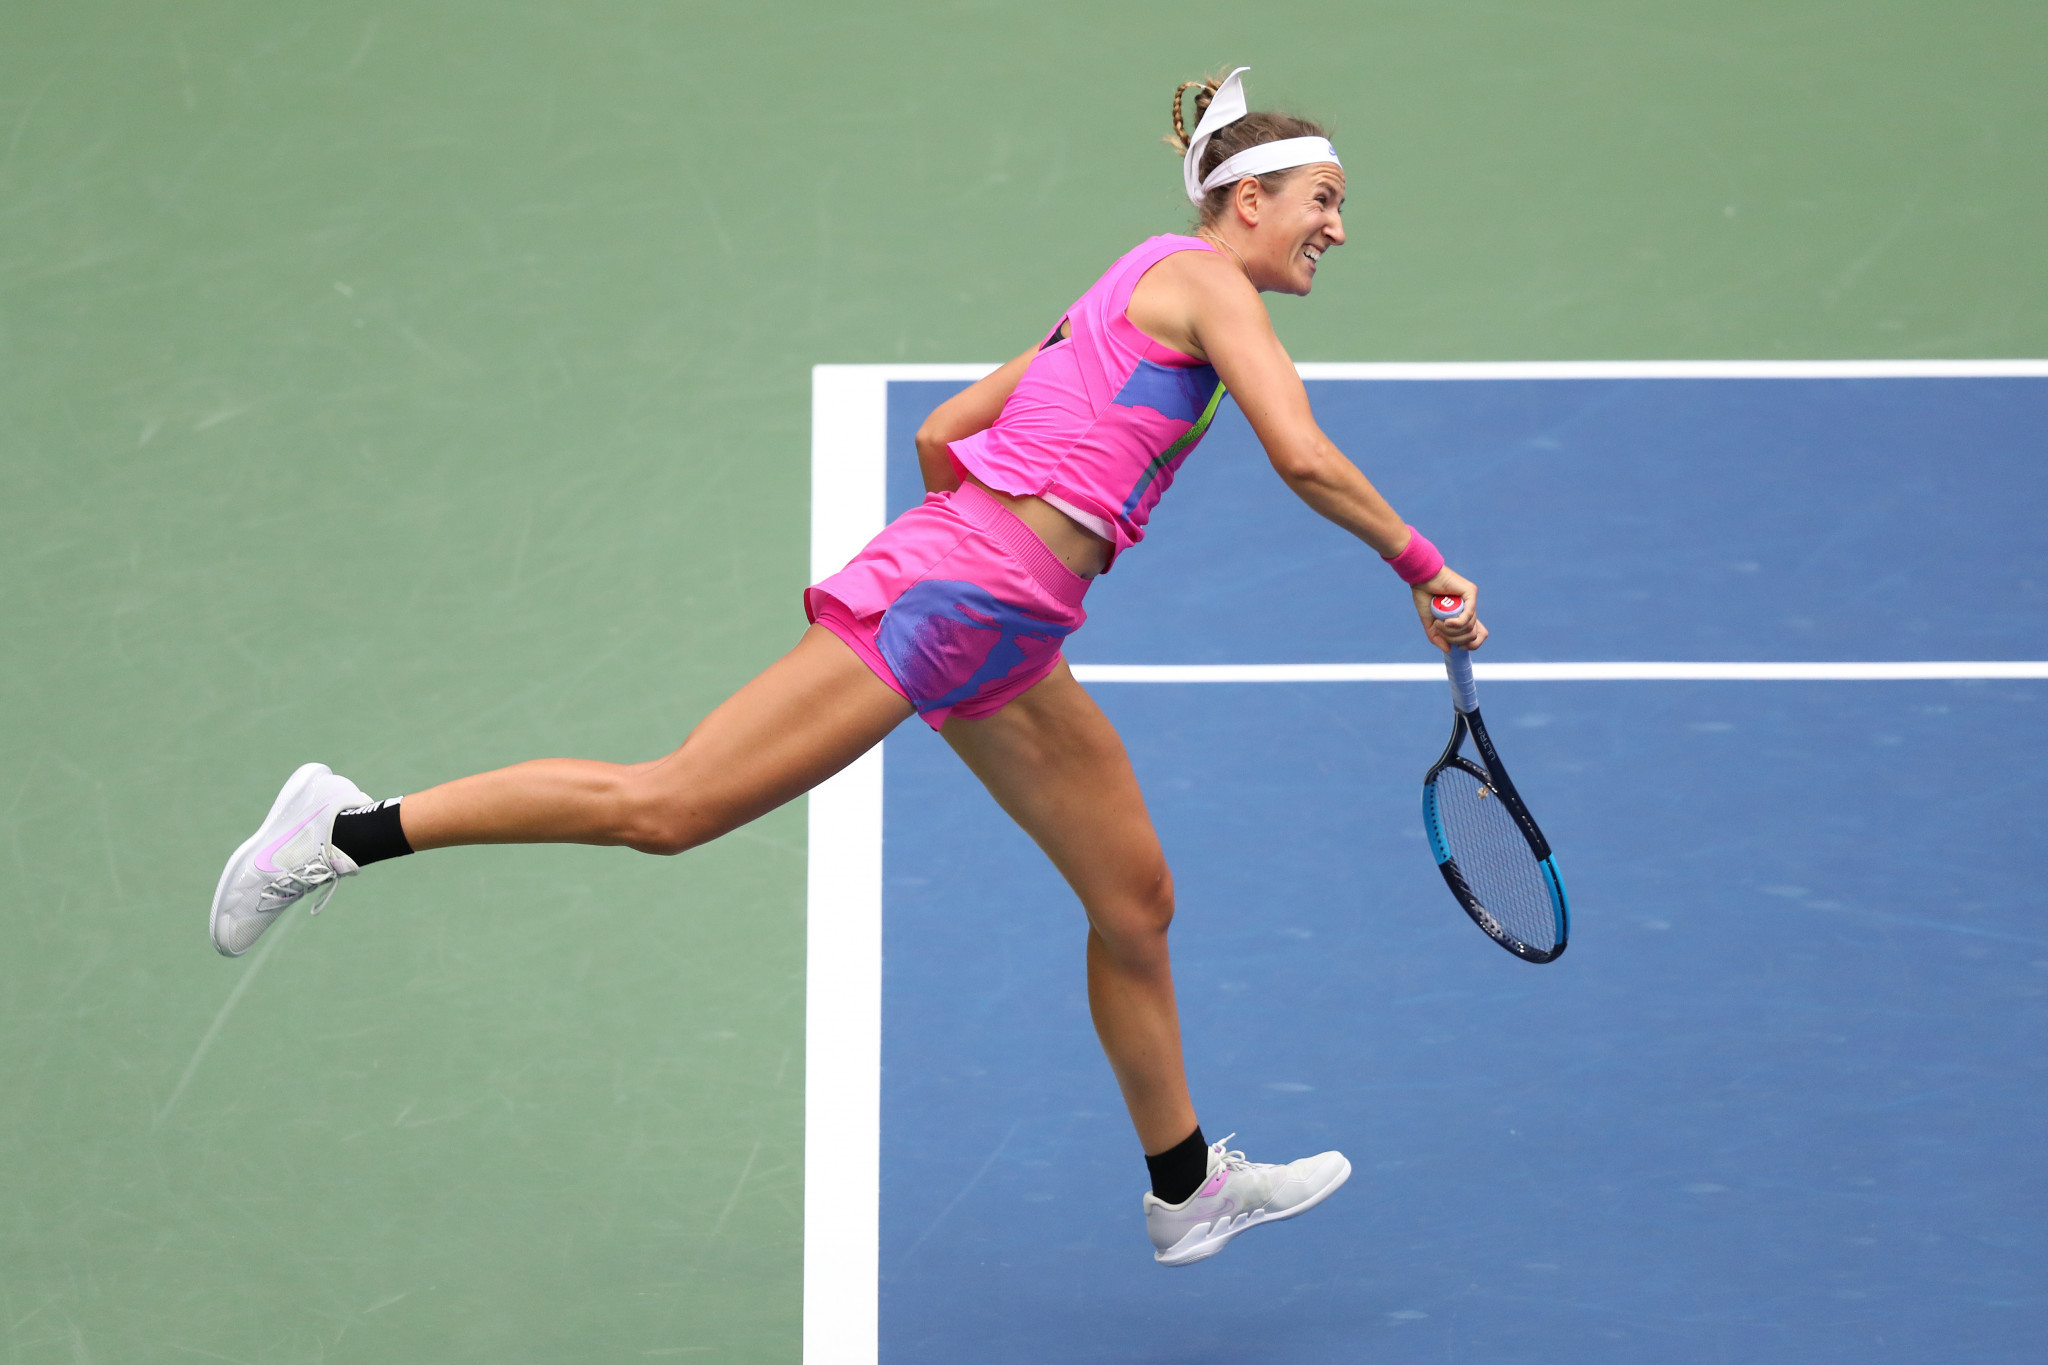 Azarenka, a former world number one, won eight of the first nine games before Osaka's stunning turnaround ©Getty Images